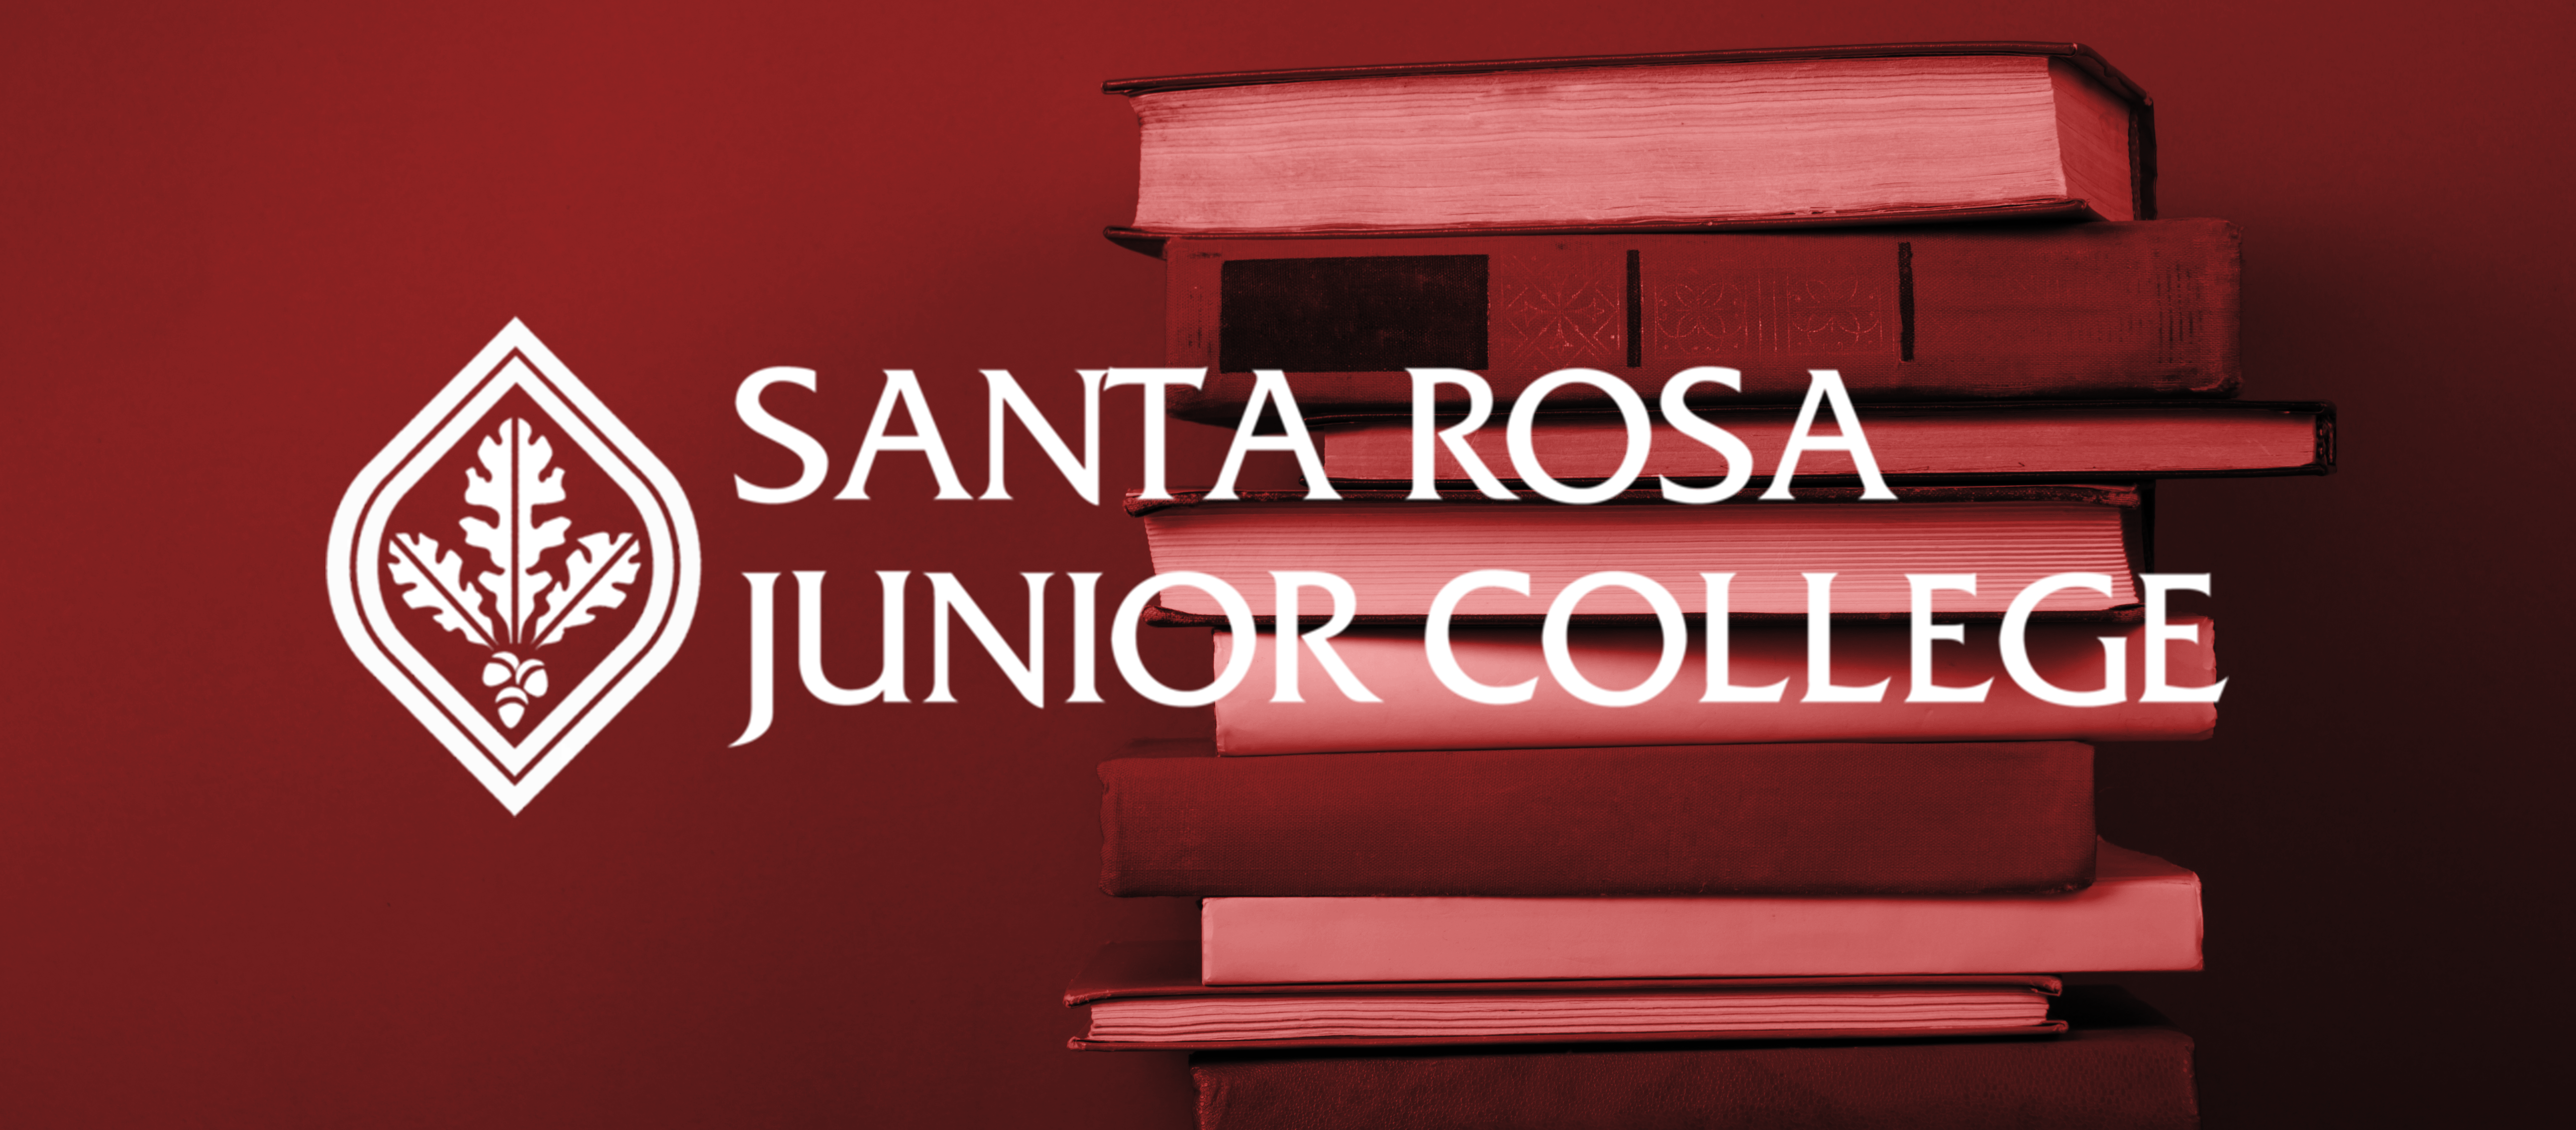 Santa_Rosa_Junior_College.png